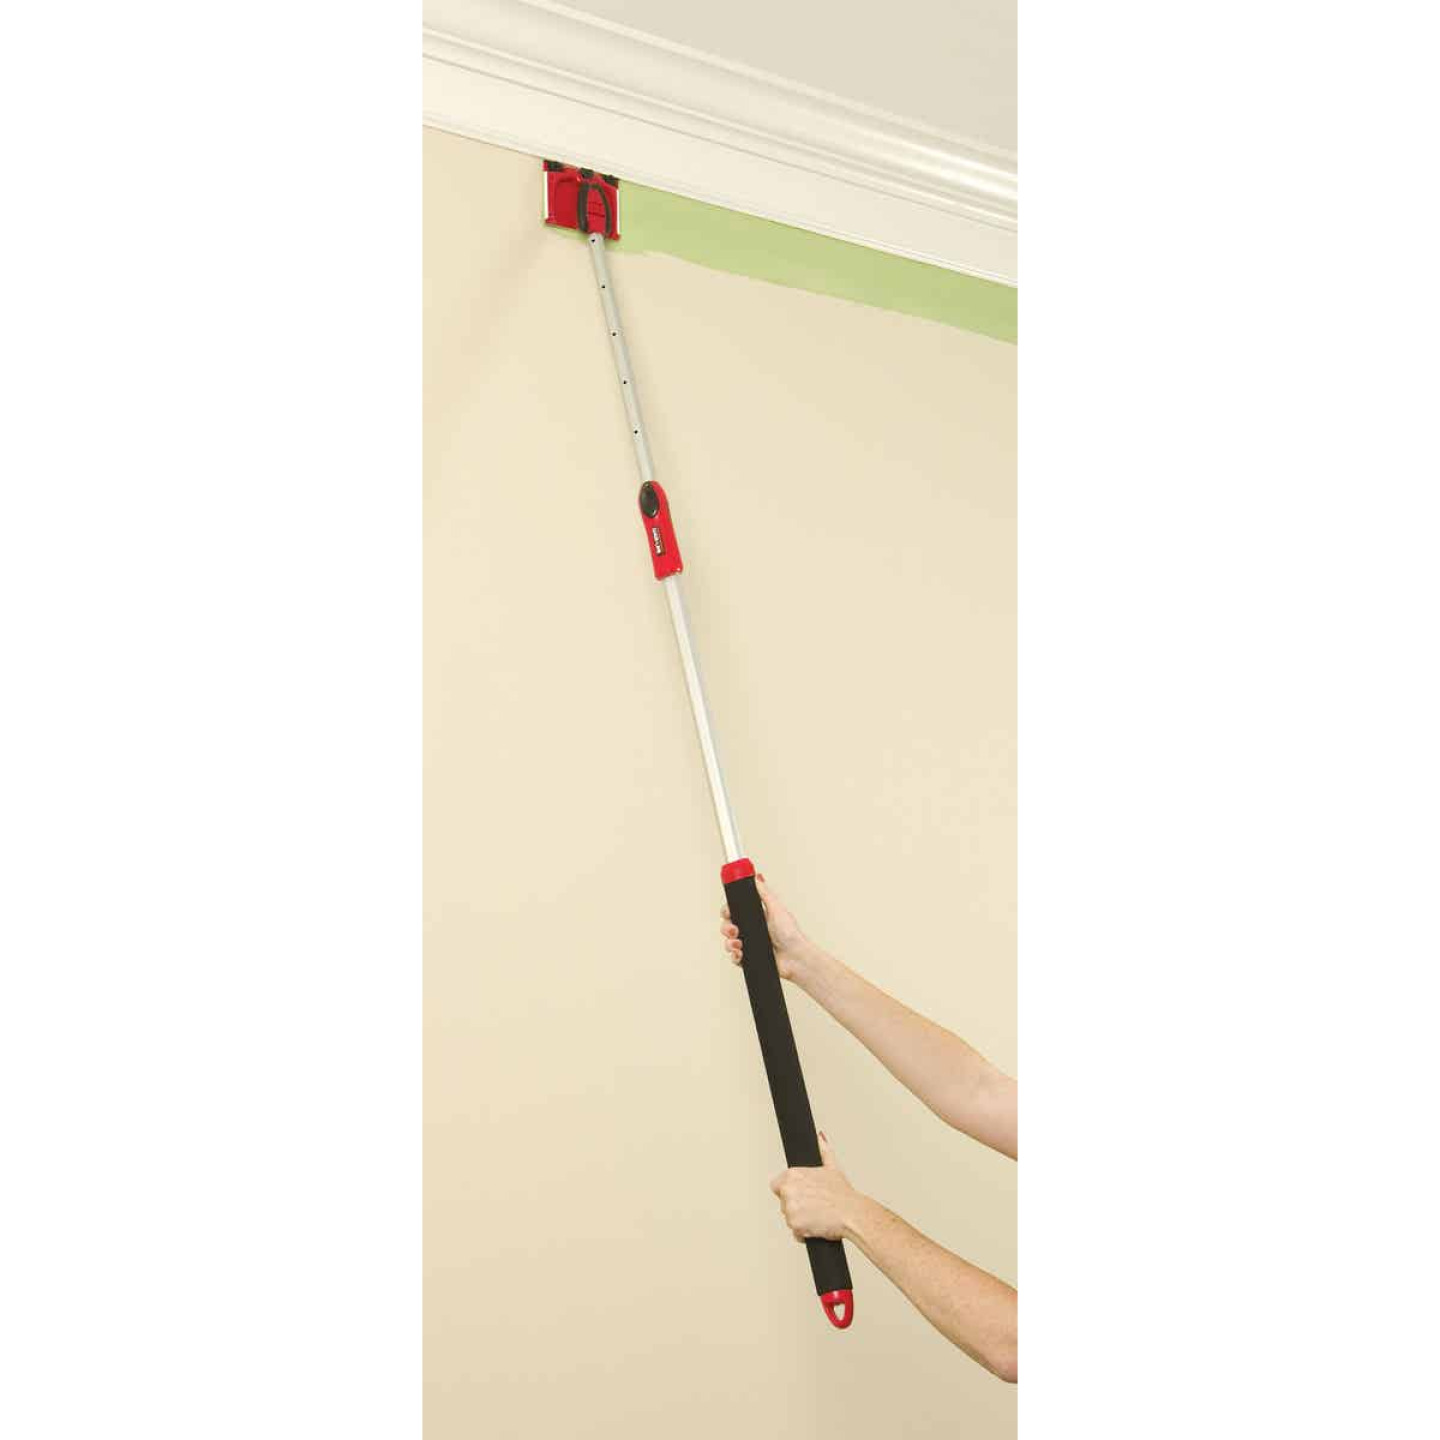 Shur-Line 18 In. to 36 In. Metal, Foam (Handle) Extension Pole Image 3